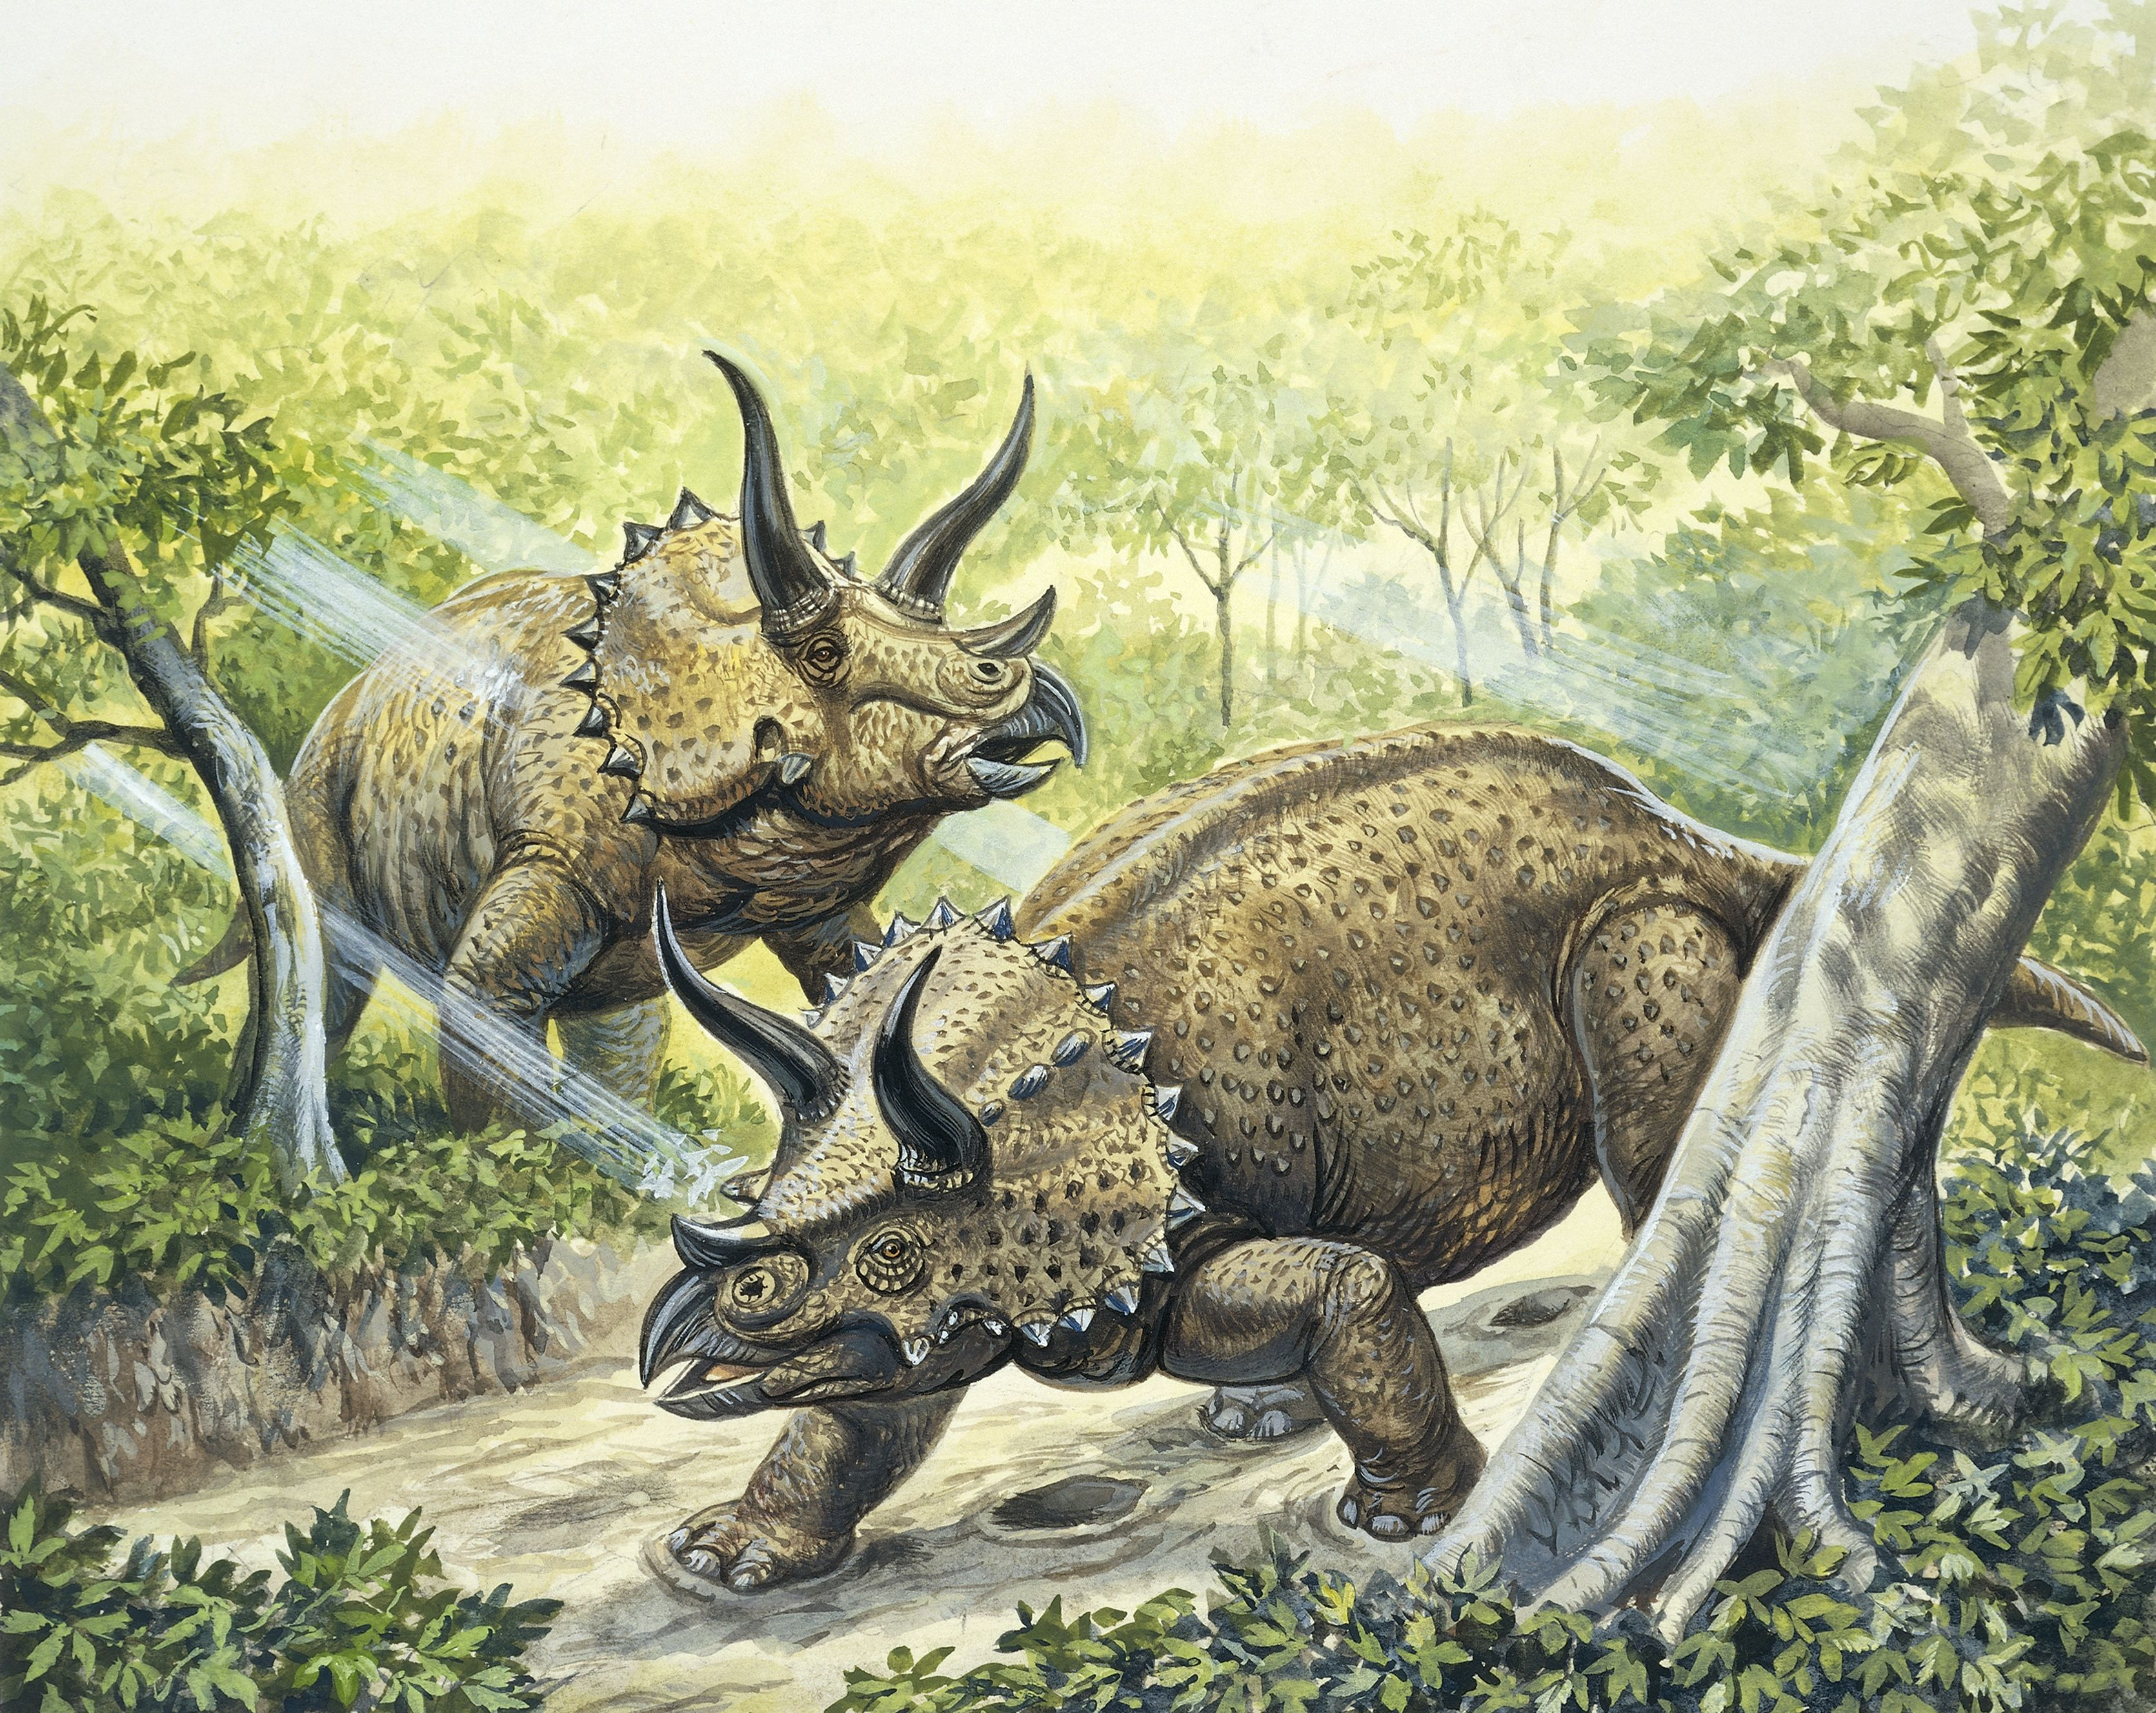 Illustration of two plant-eating Triceratops roaming around a lush green wilderness